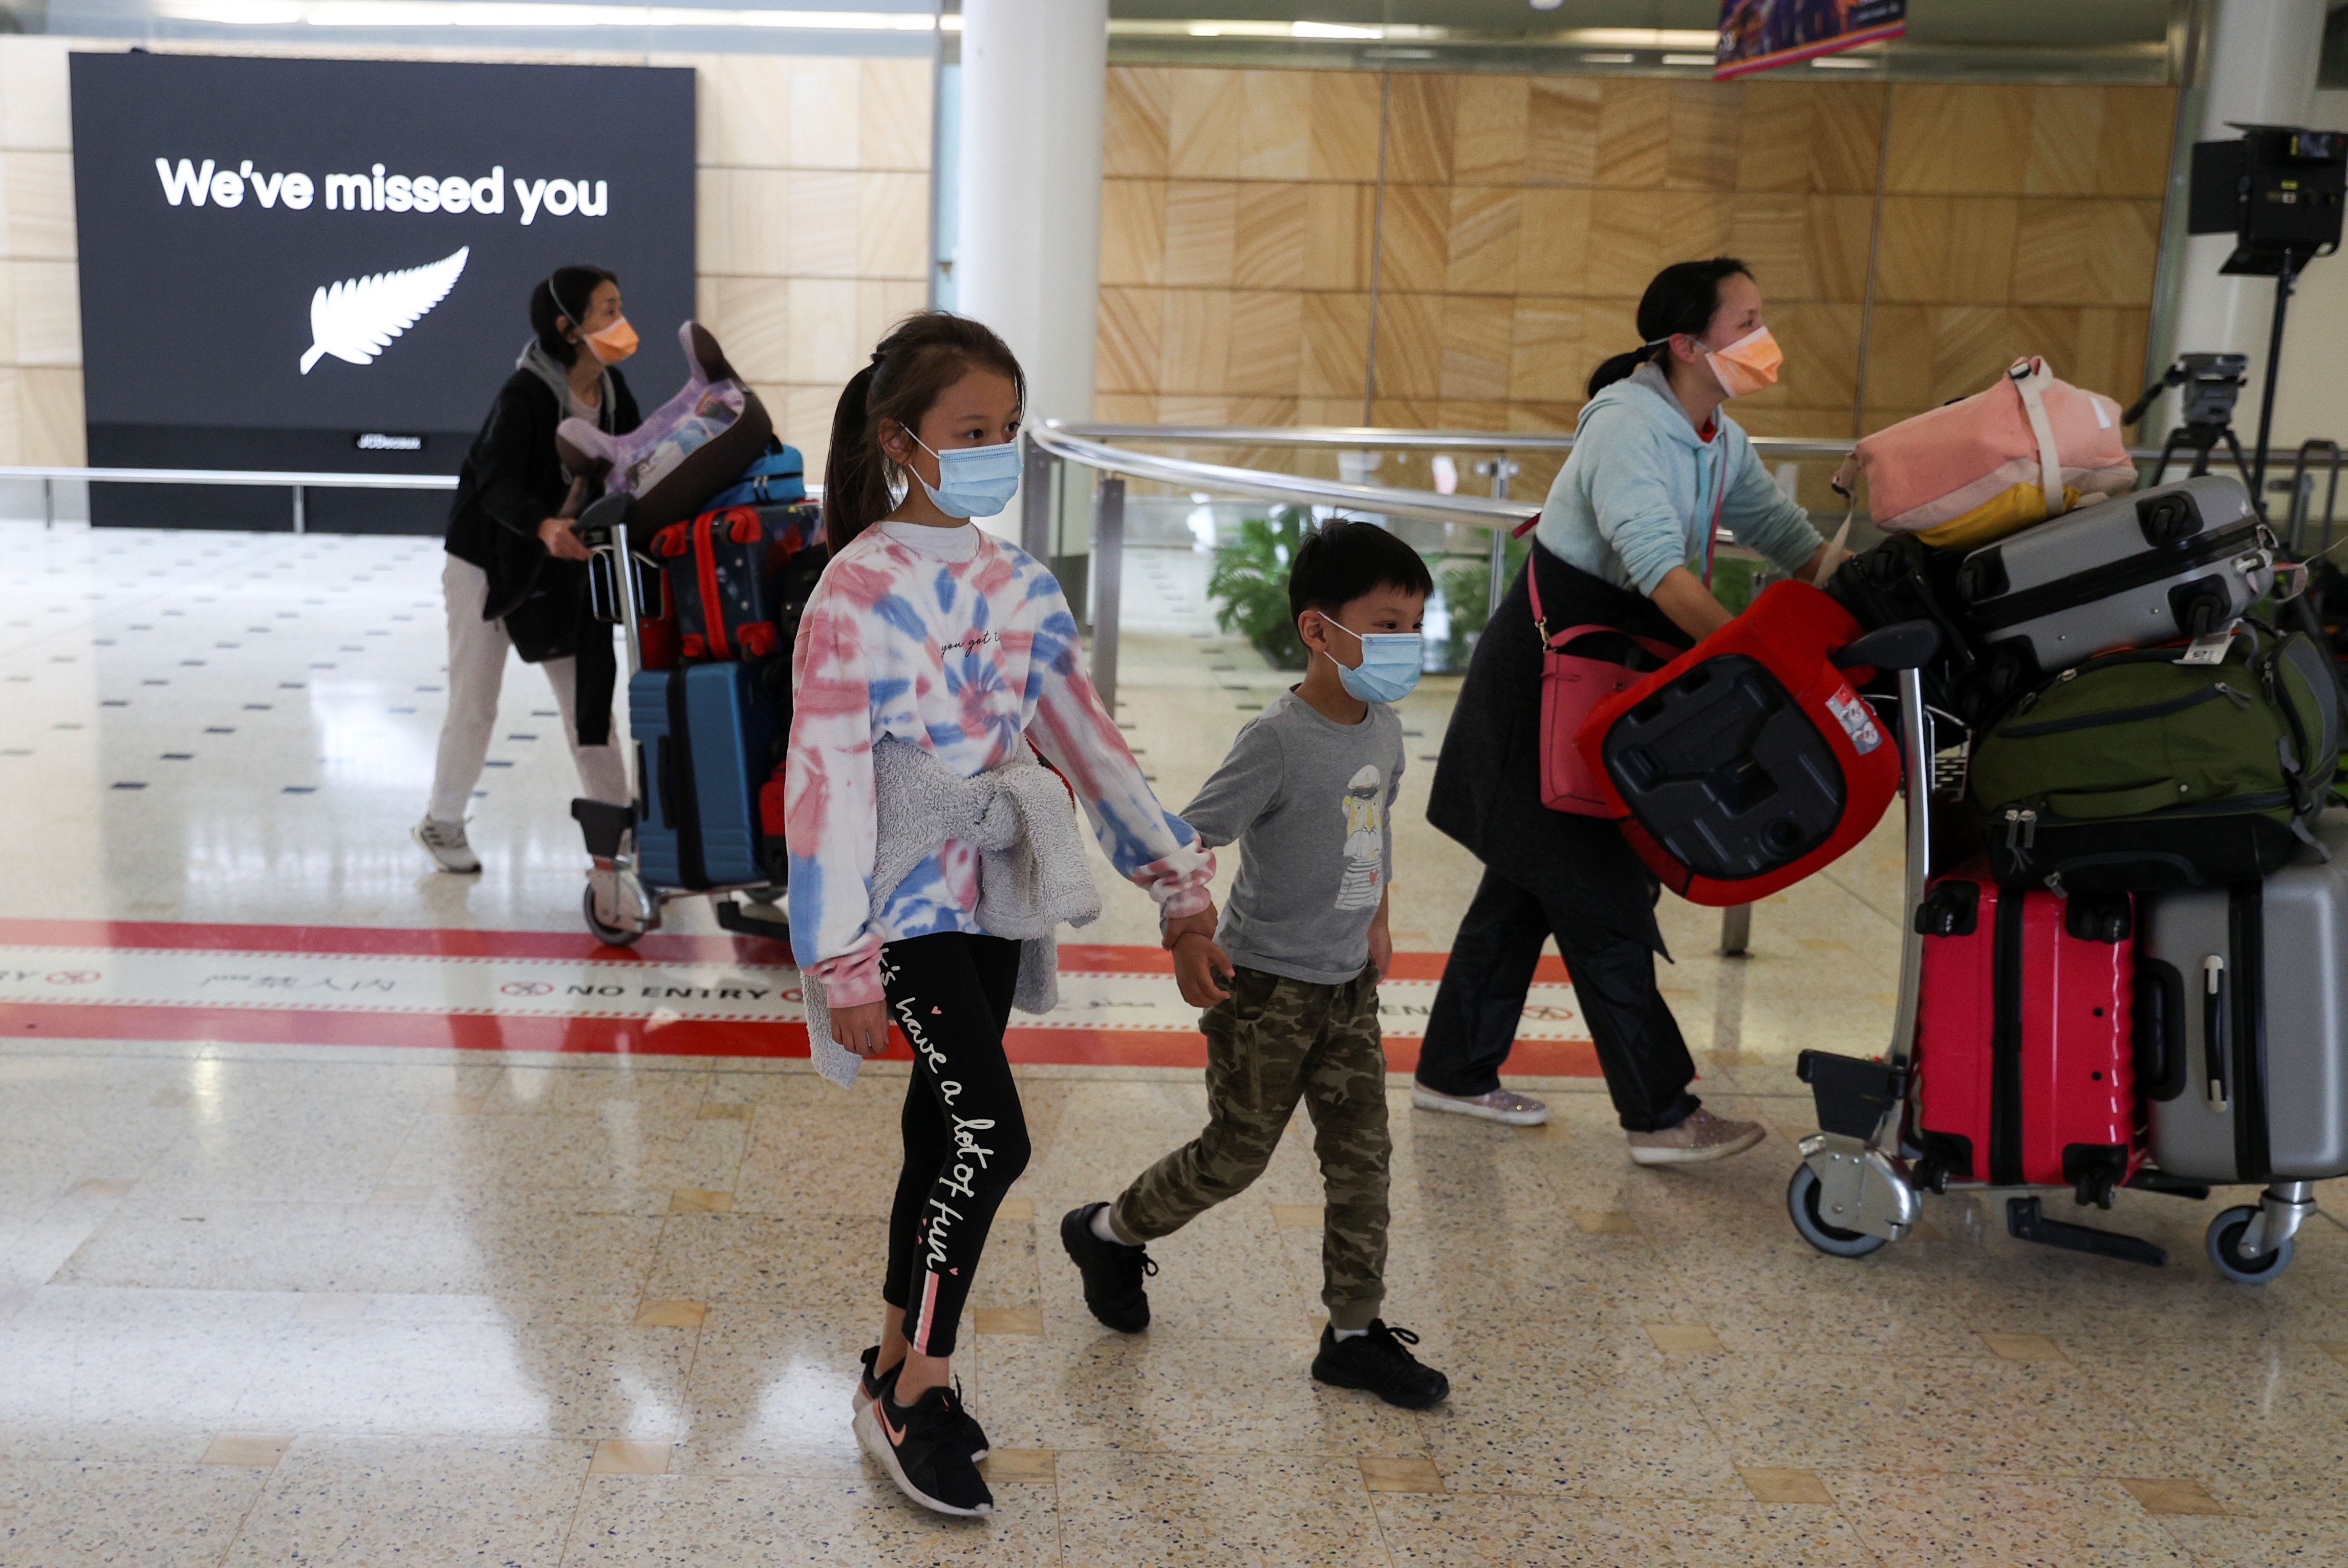 Passengers arrive from New Zealand after the Trans-Tasman travel bubble opened overnight, following an extended border closure due to the coronavirus disease (COVID-19) outbreak, at Sydney Airport in Sydney, Australia, October 16, 2020. REUTERS/Loren Elliott